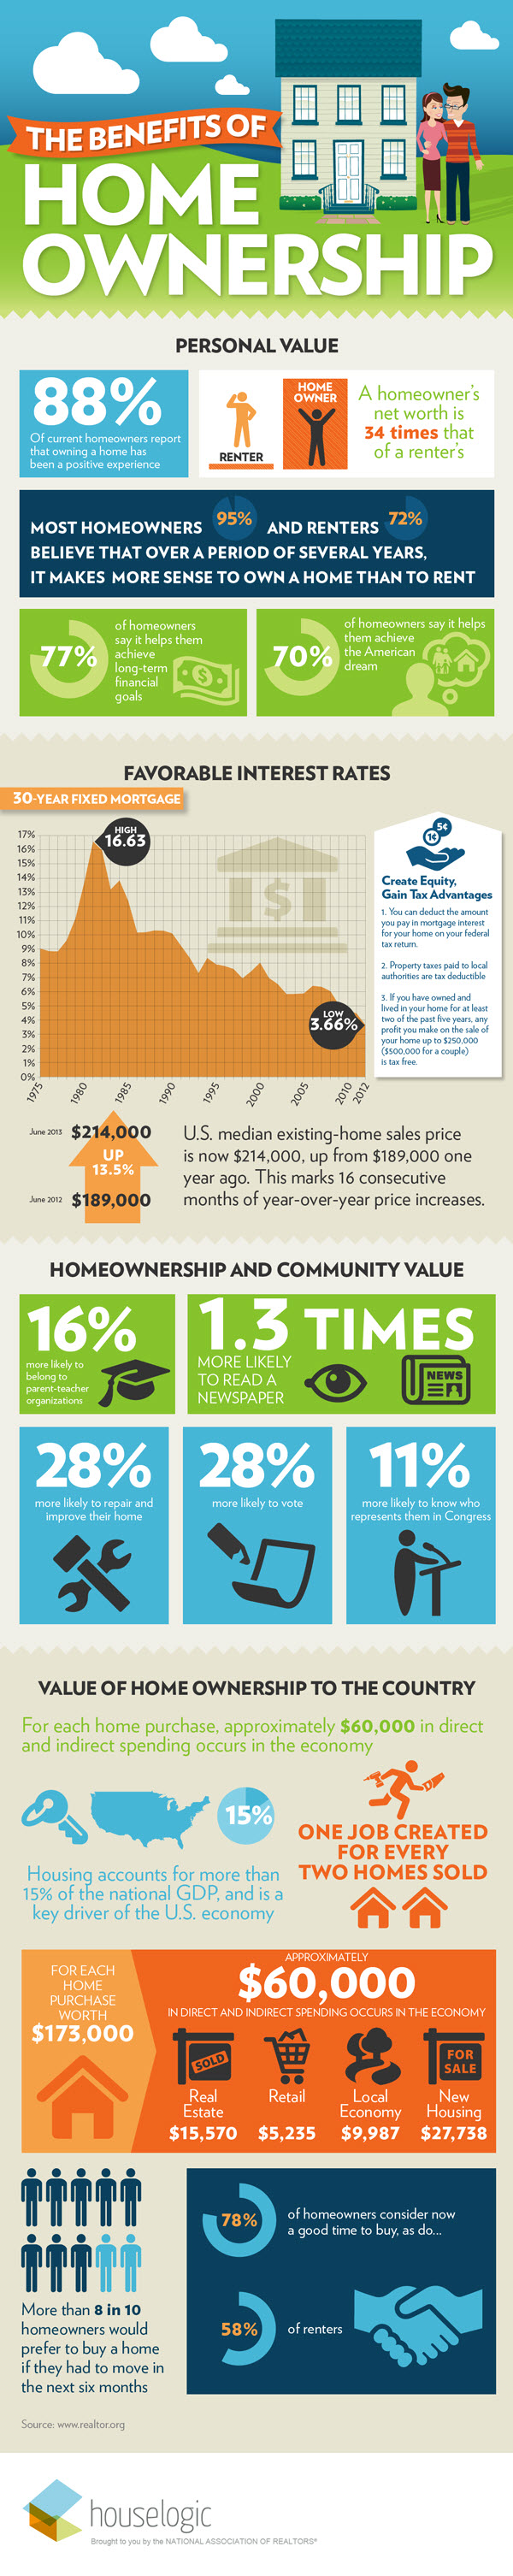 Infographic Benefits Homeownership_May 2016